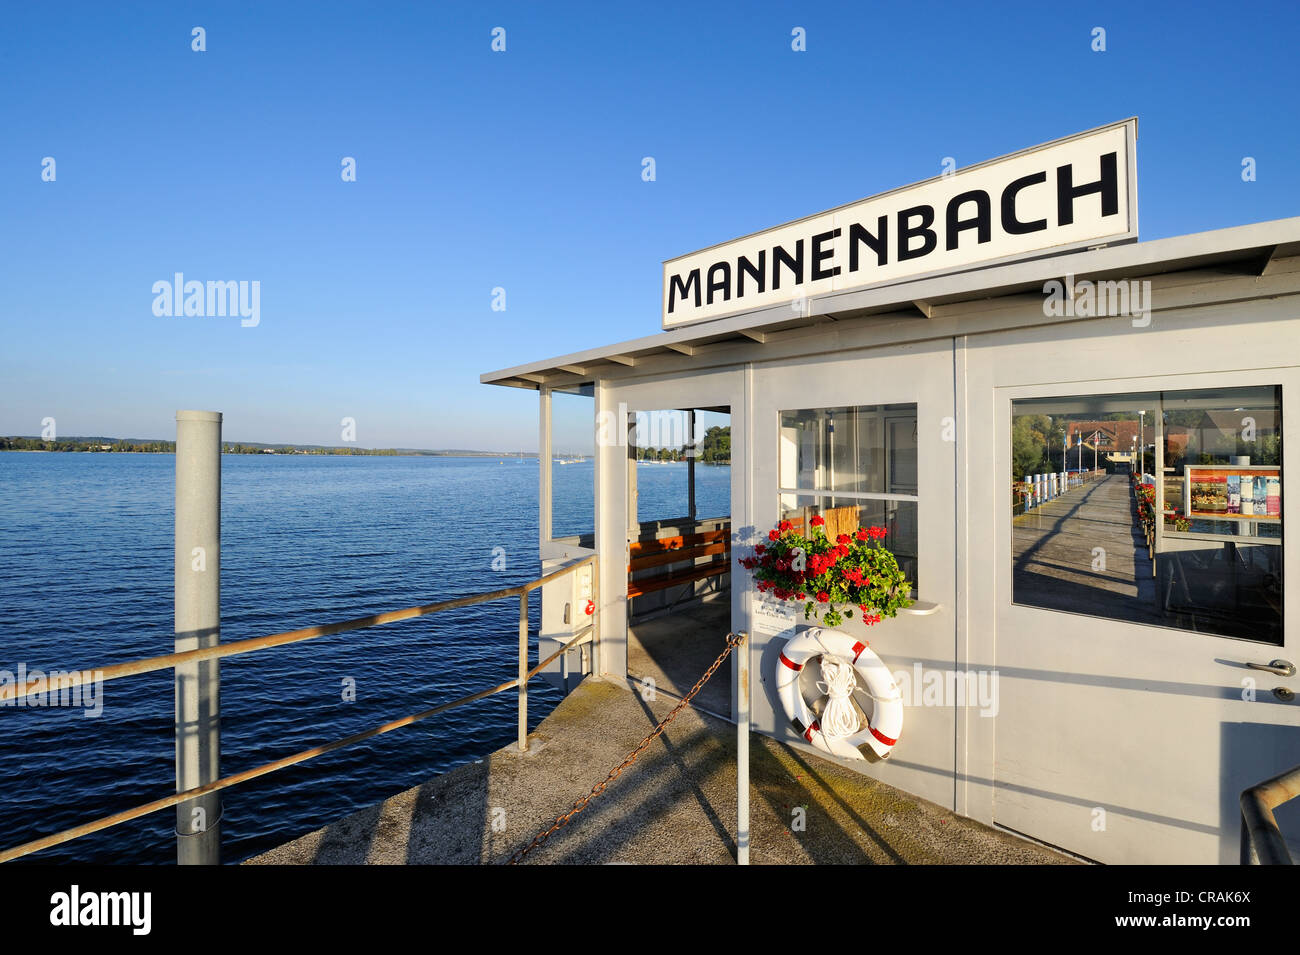 Shelter on pier of Mannenbach, Canton of Thurgau, Switzerland, Europe - Stock Image